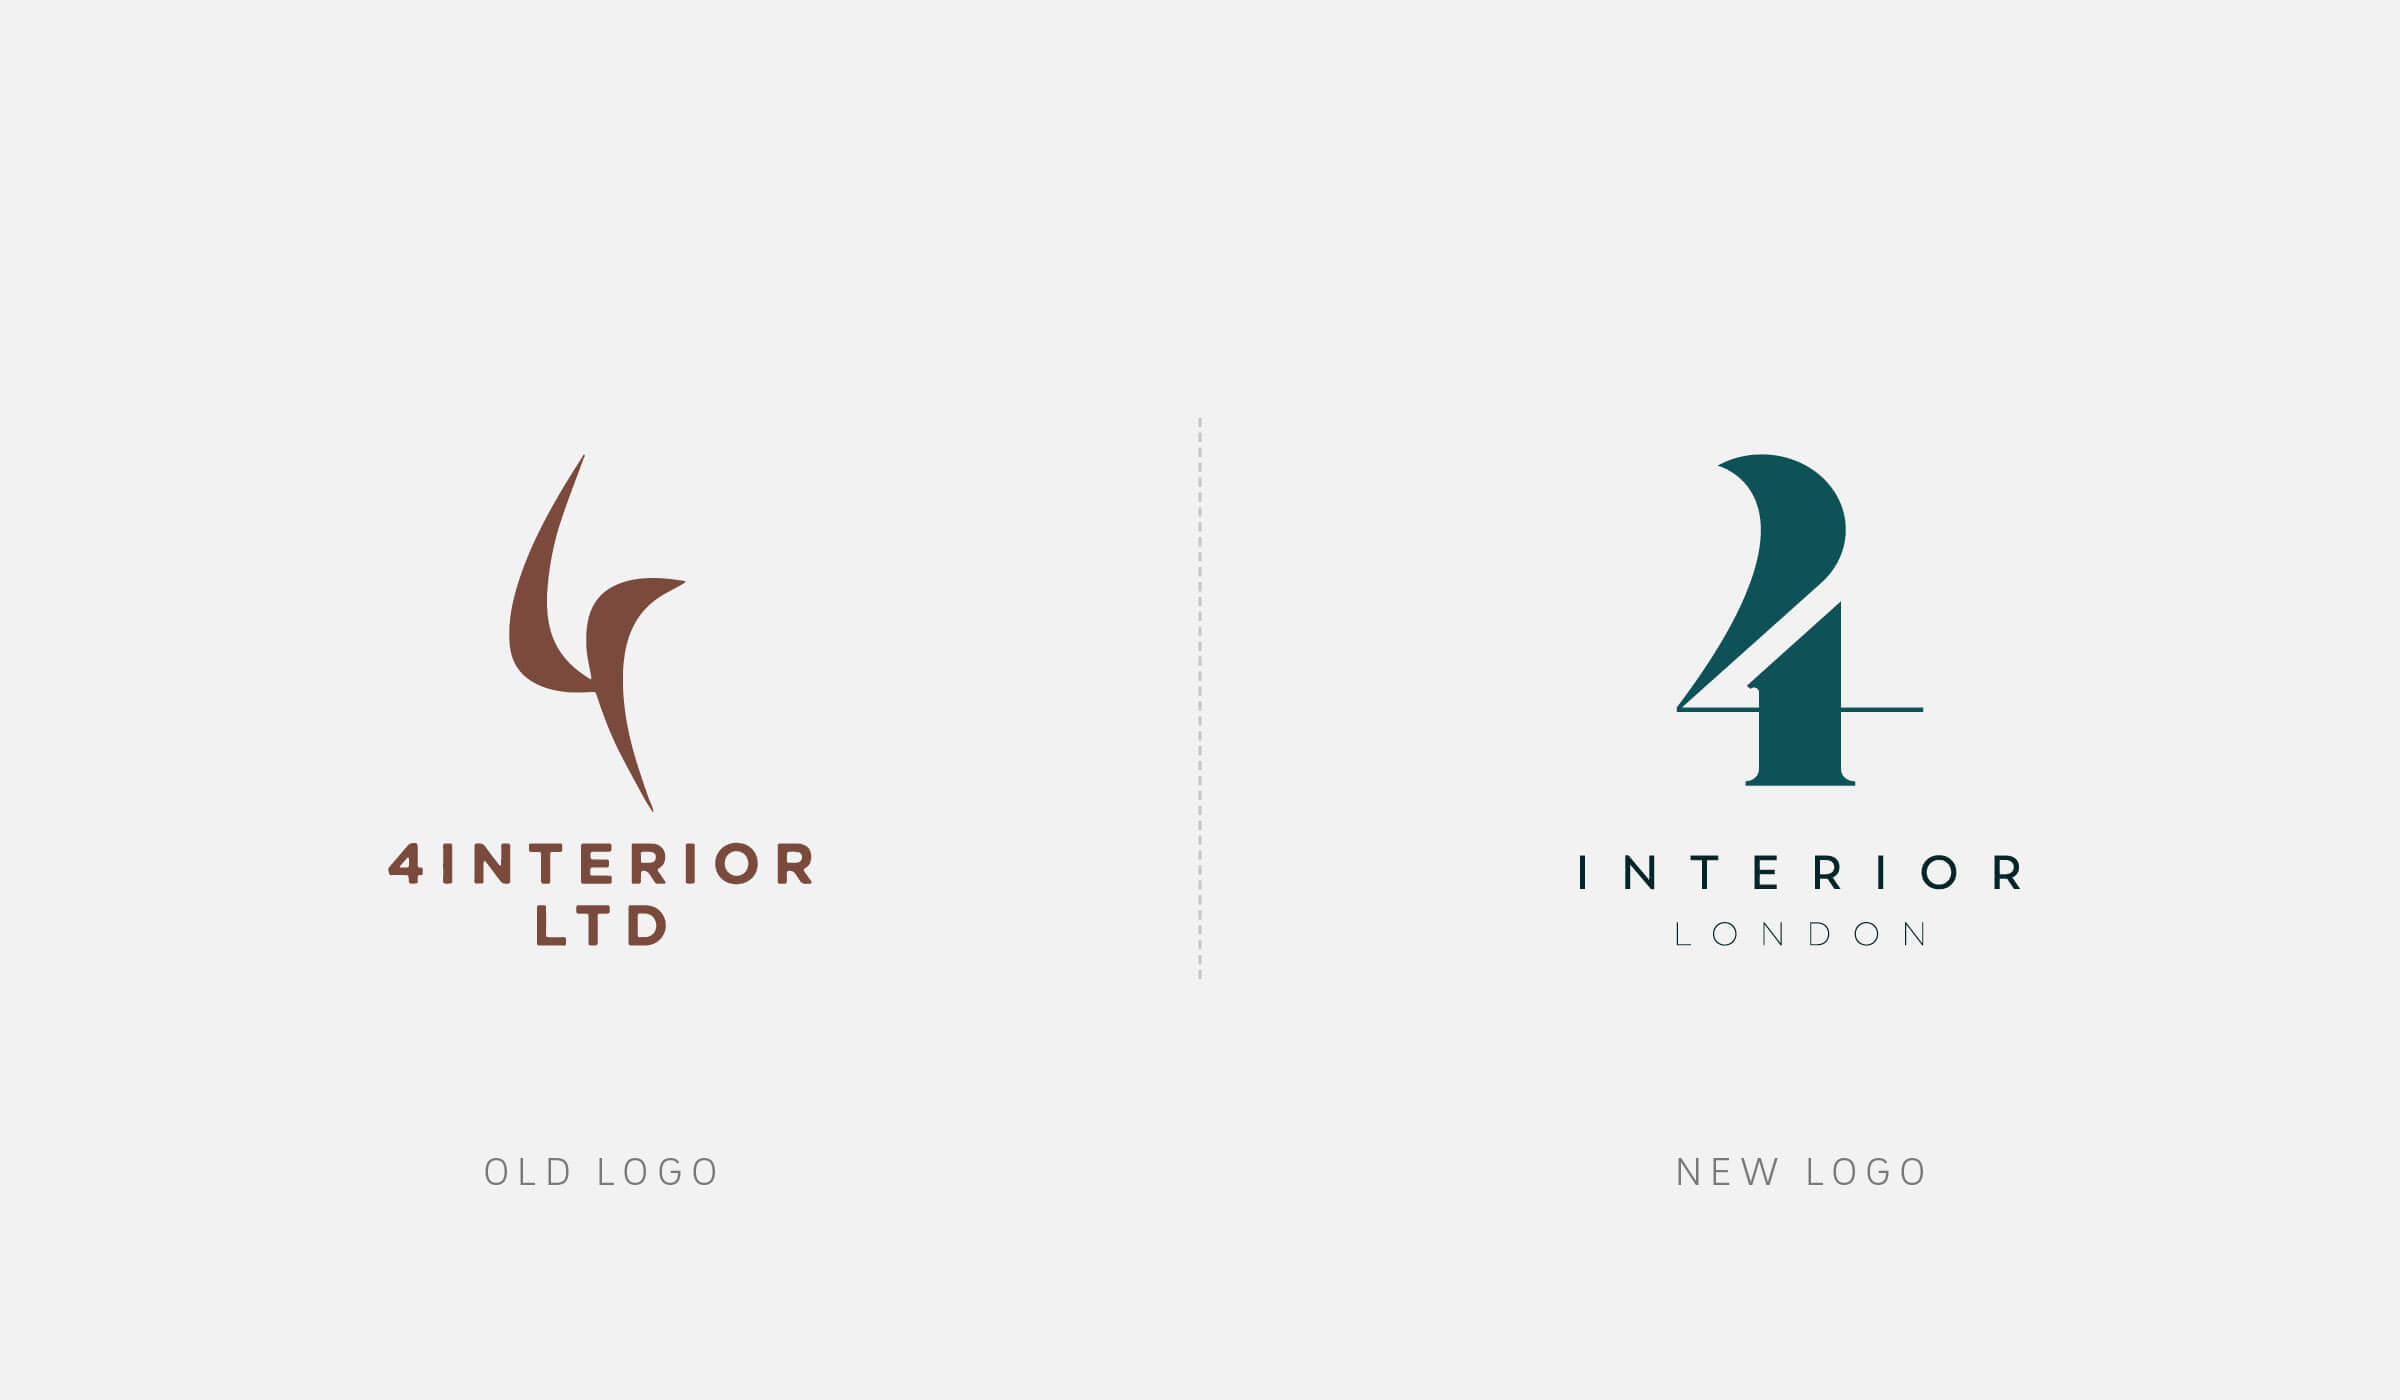 4interior logo design before/after